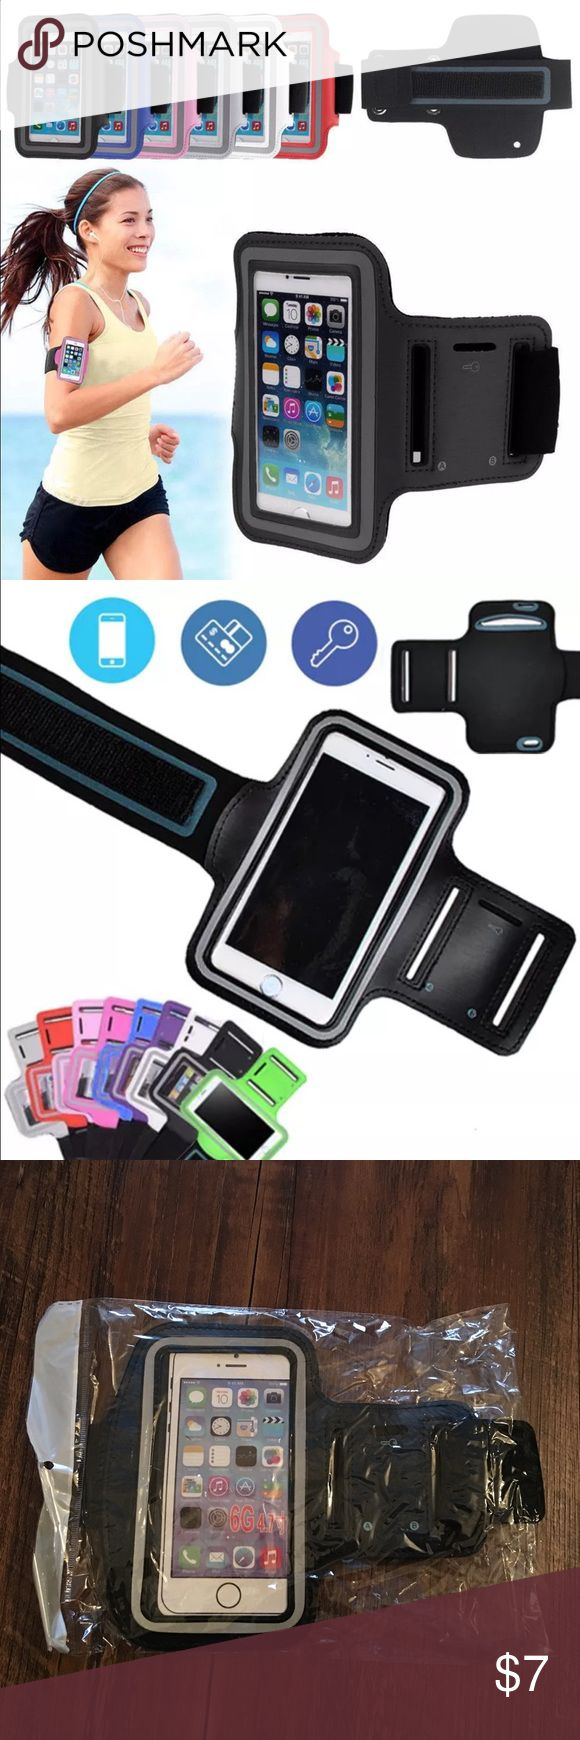 iPhone 6/6s case Brand new Sports running jogging gym armband case Accessories Phone Cases